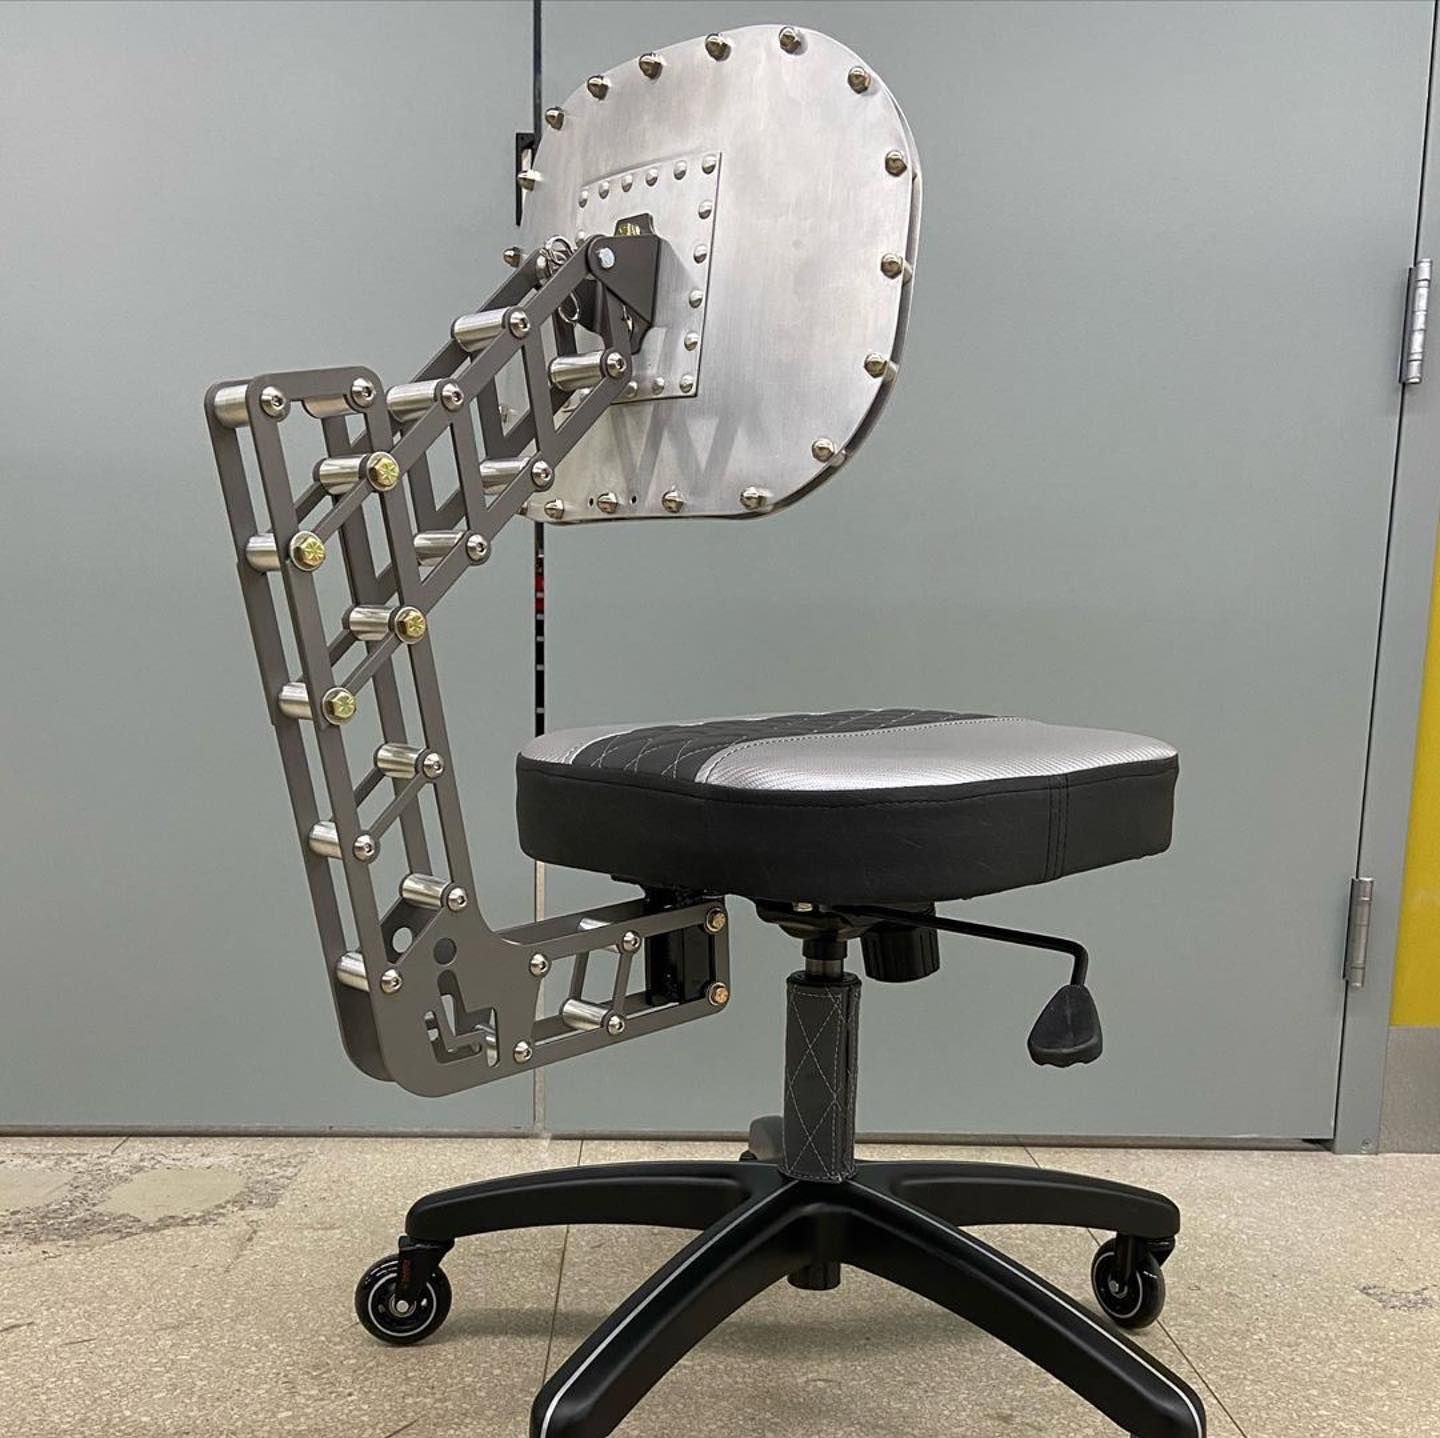 """Project of the week! Industrial tattoo chair by @niteowl_tattoo_furniture - so awesome. ・・・ It's FINALLY DONE.  The inventively named """"Sit Symbol Chair"""" with laser cut steel brackets.  It's a one-off design and is actually comfortable with good lower back support. . . . .  #customchair #industrialfurniture #customfurniture #industrialdesign #metalart #maker #stuffmadeinct #fabrication #customfabrication #fusion360 #mcmastercarr #metalwork #dimpledie #upholstery @sendcutsend @makerspacect #jarryr"""